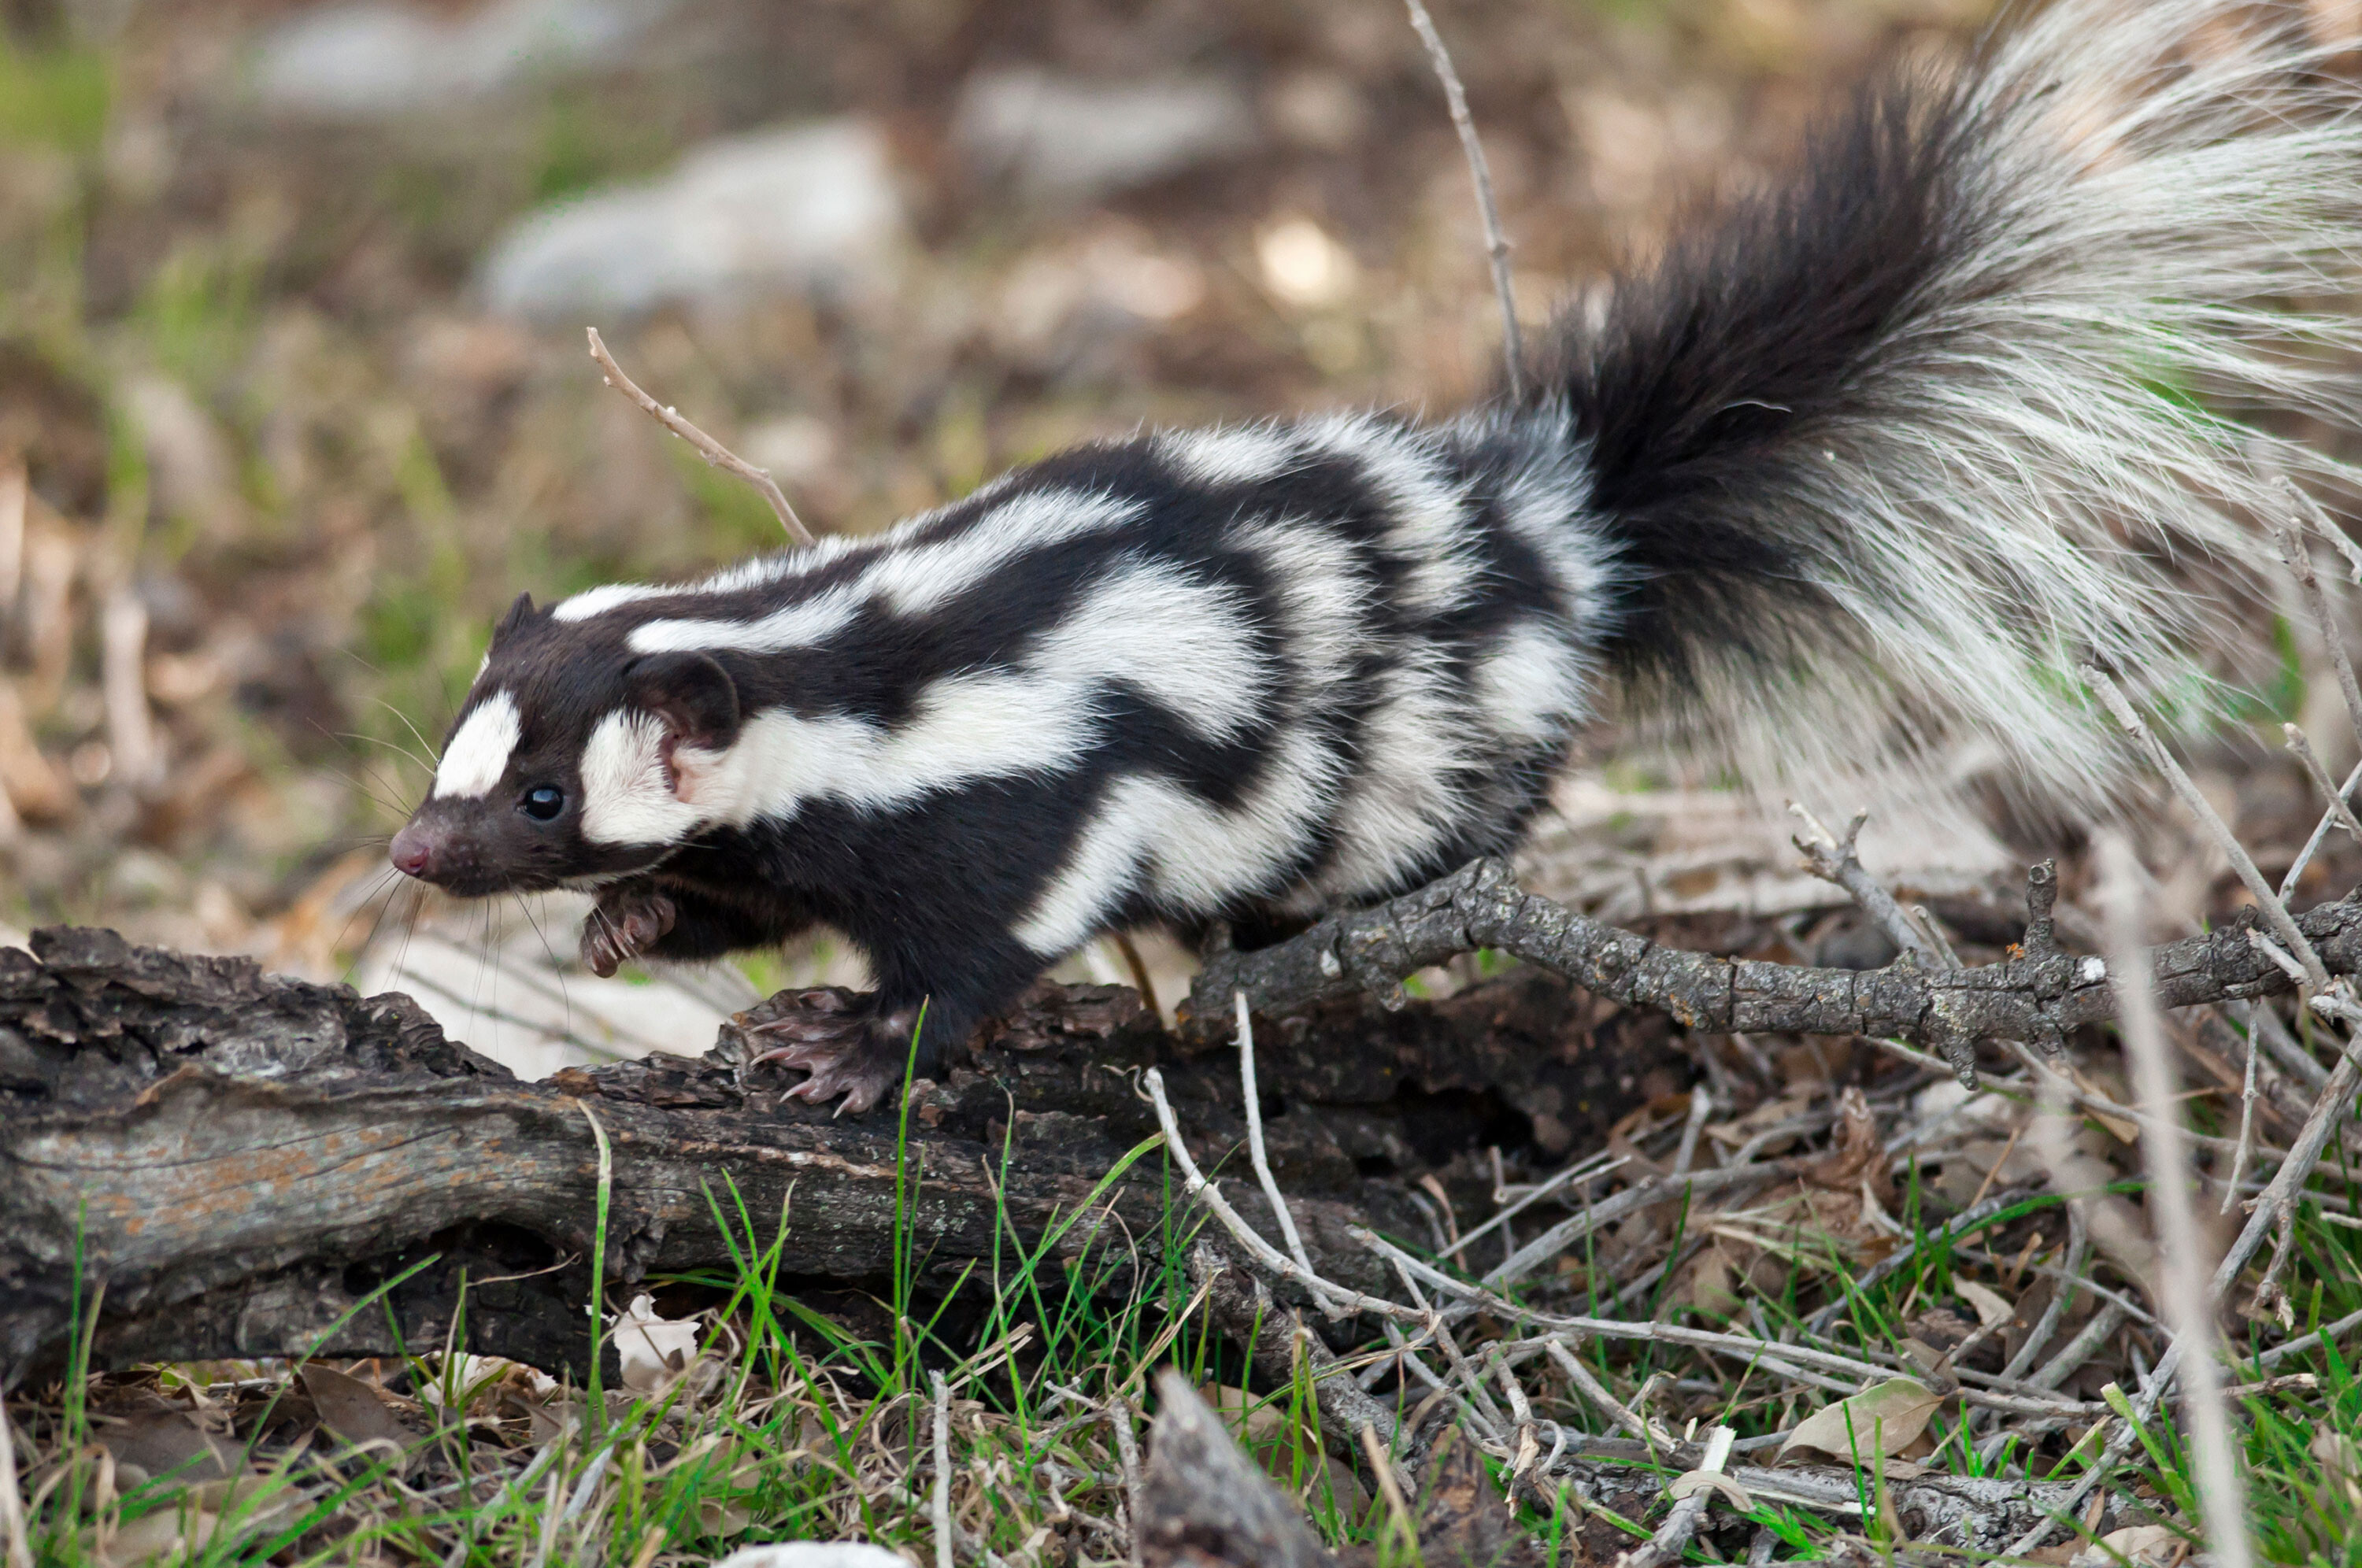 Say hello to handstanding spotted skunks, 'the acrobats of the skunk world'